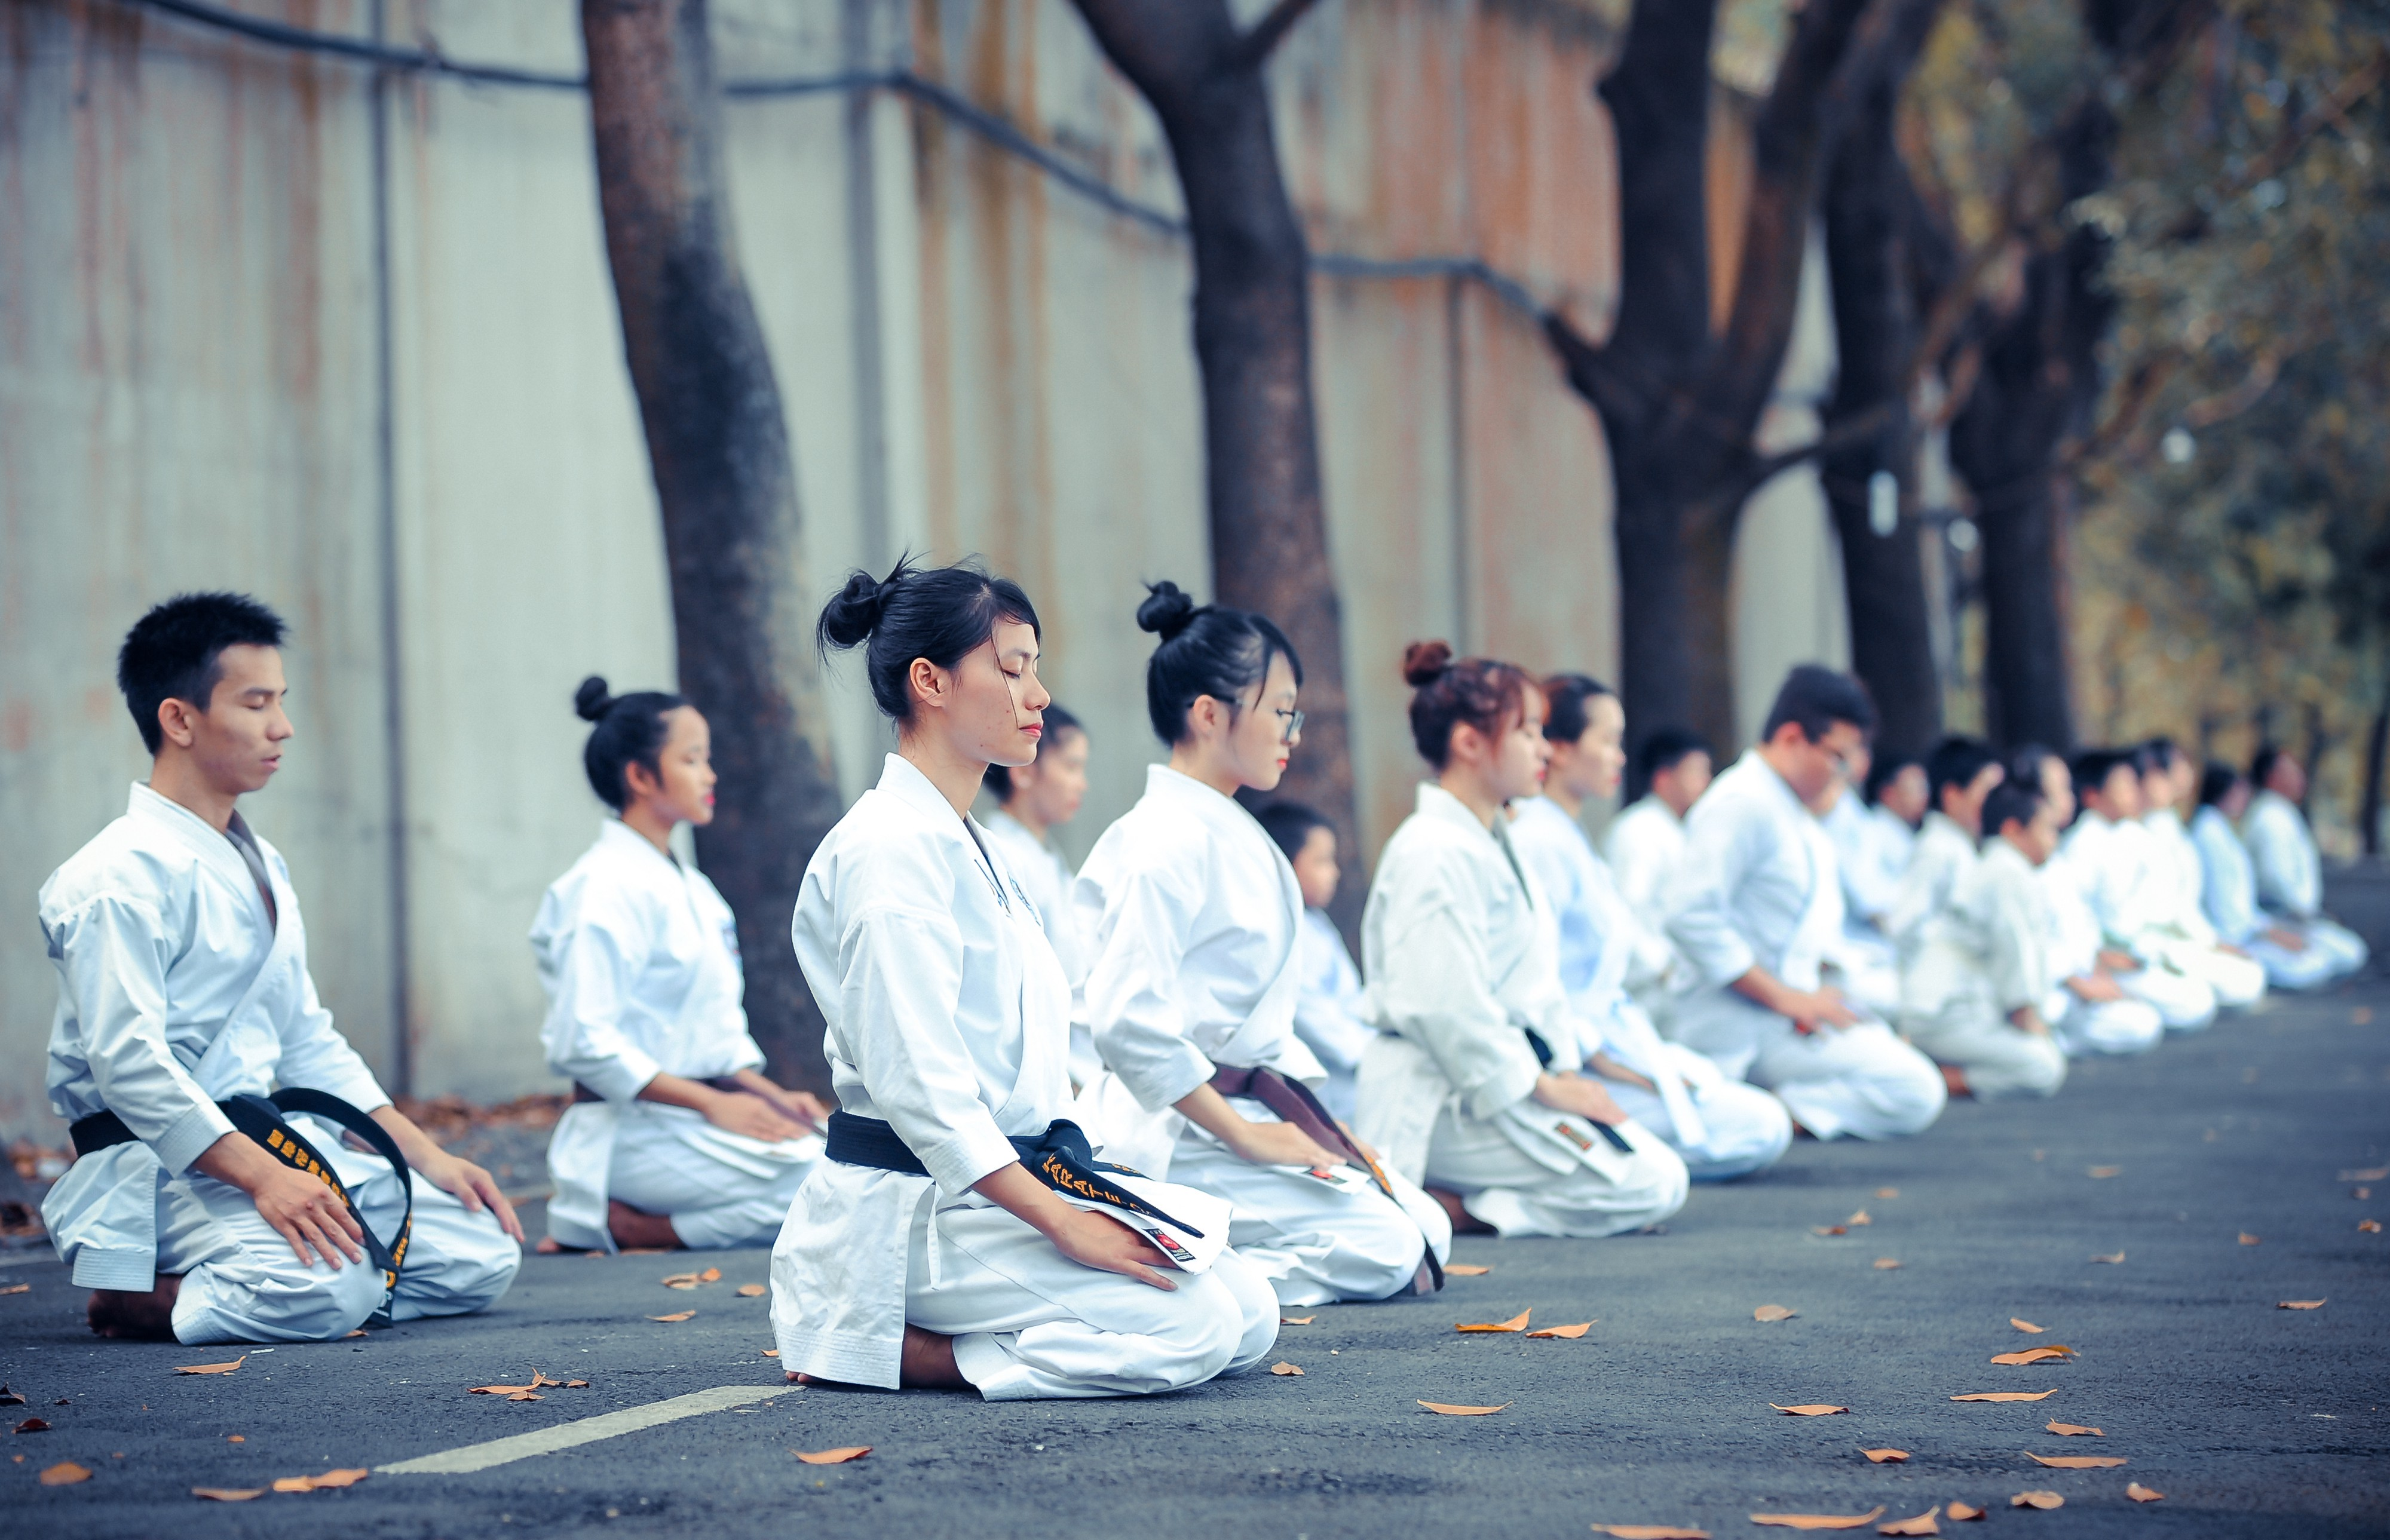 karate for strength and fitness